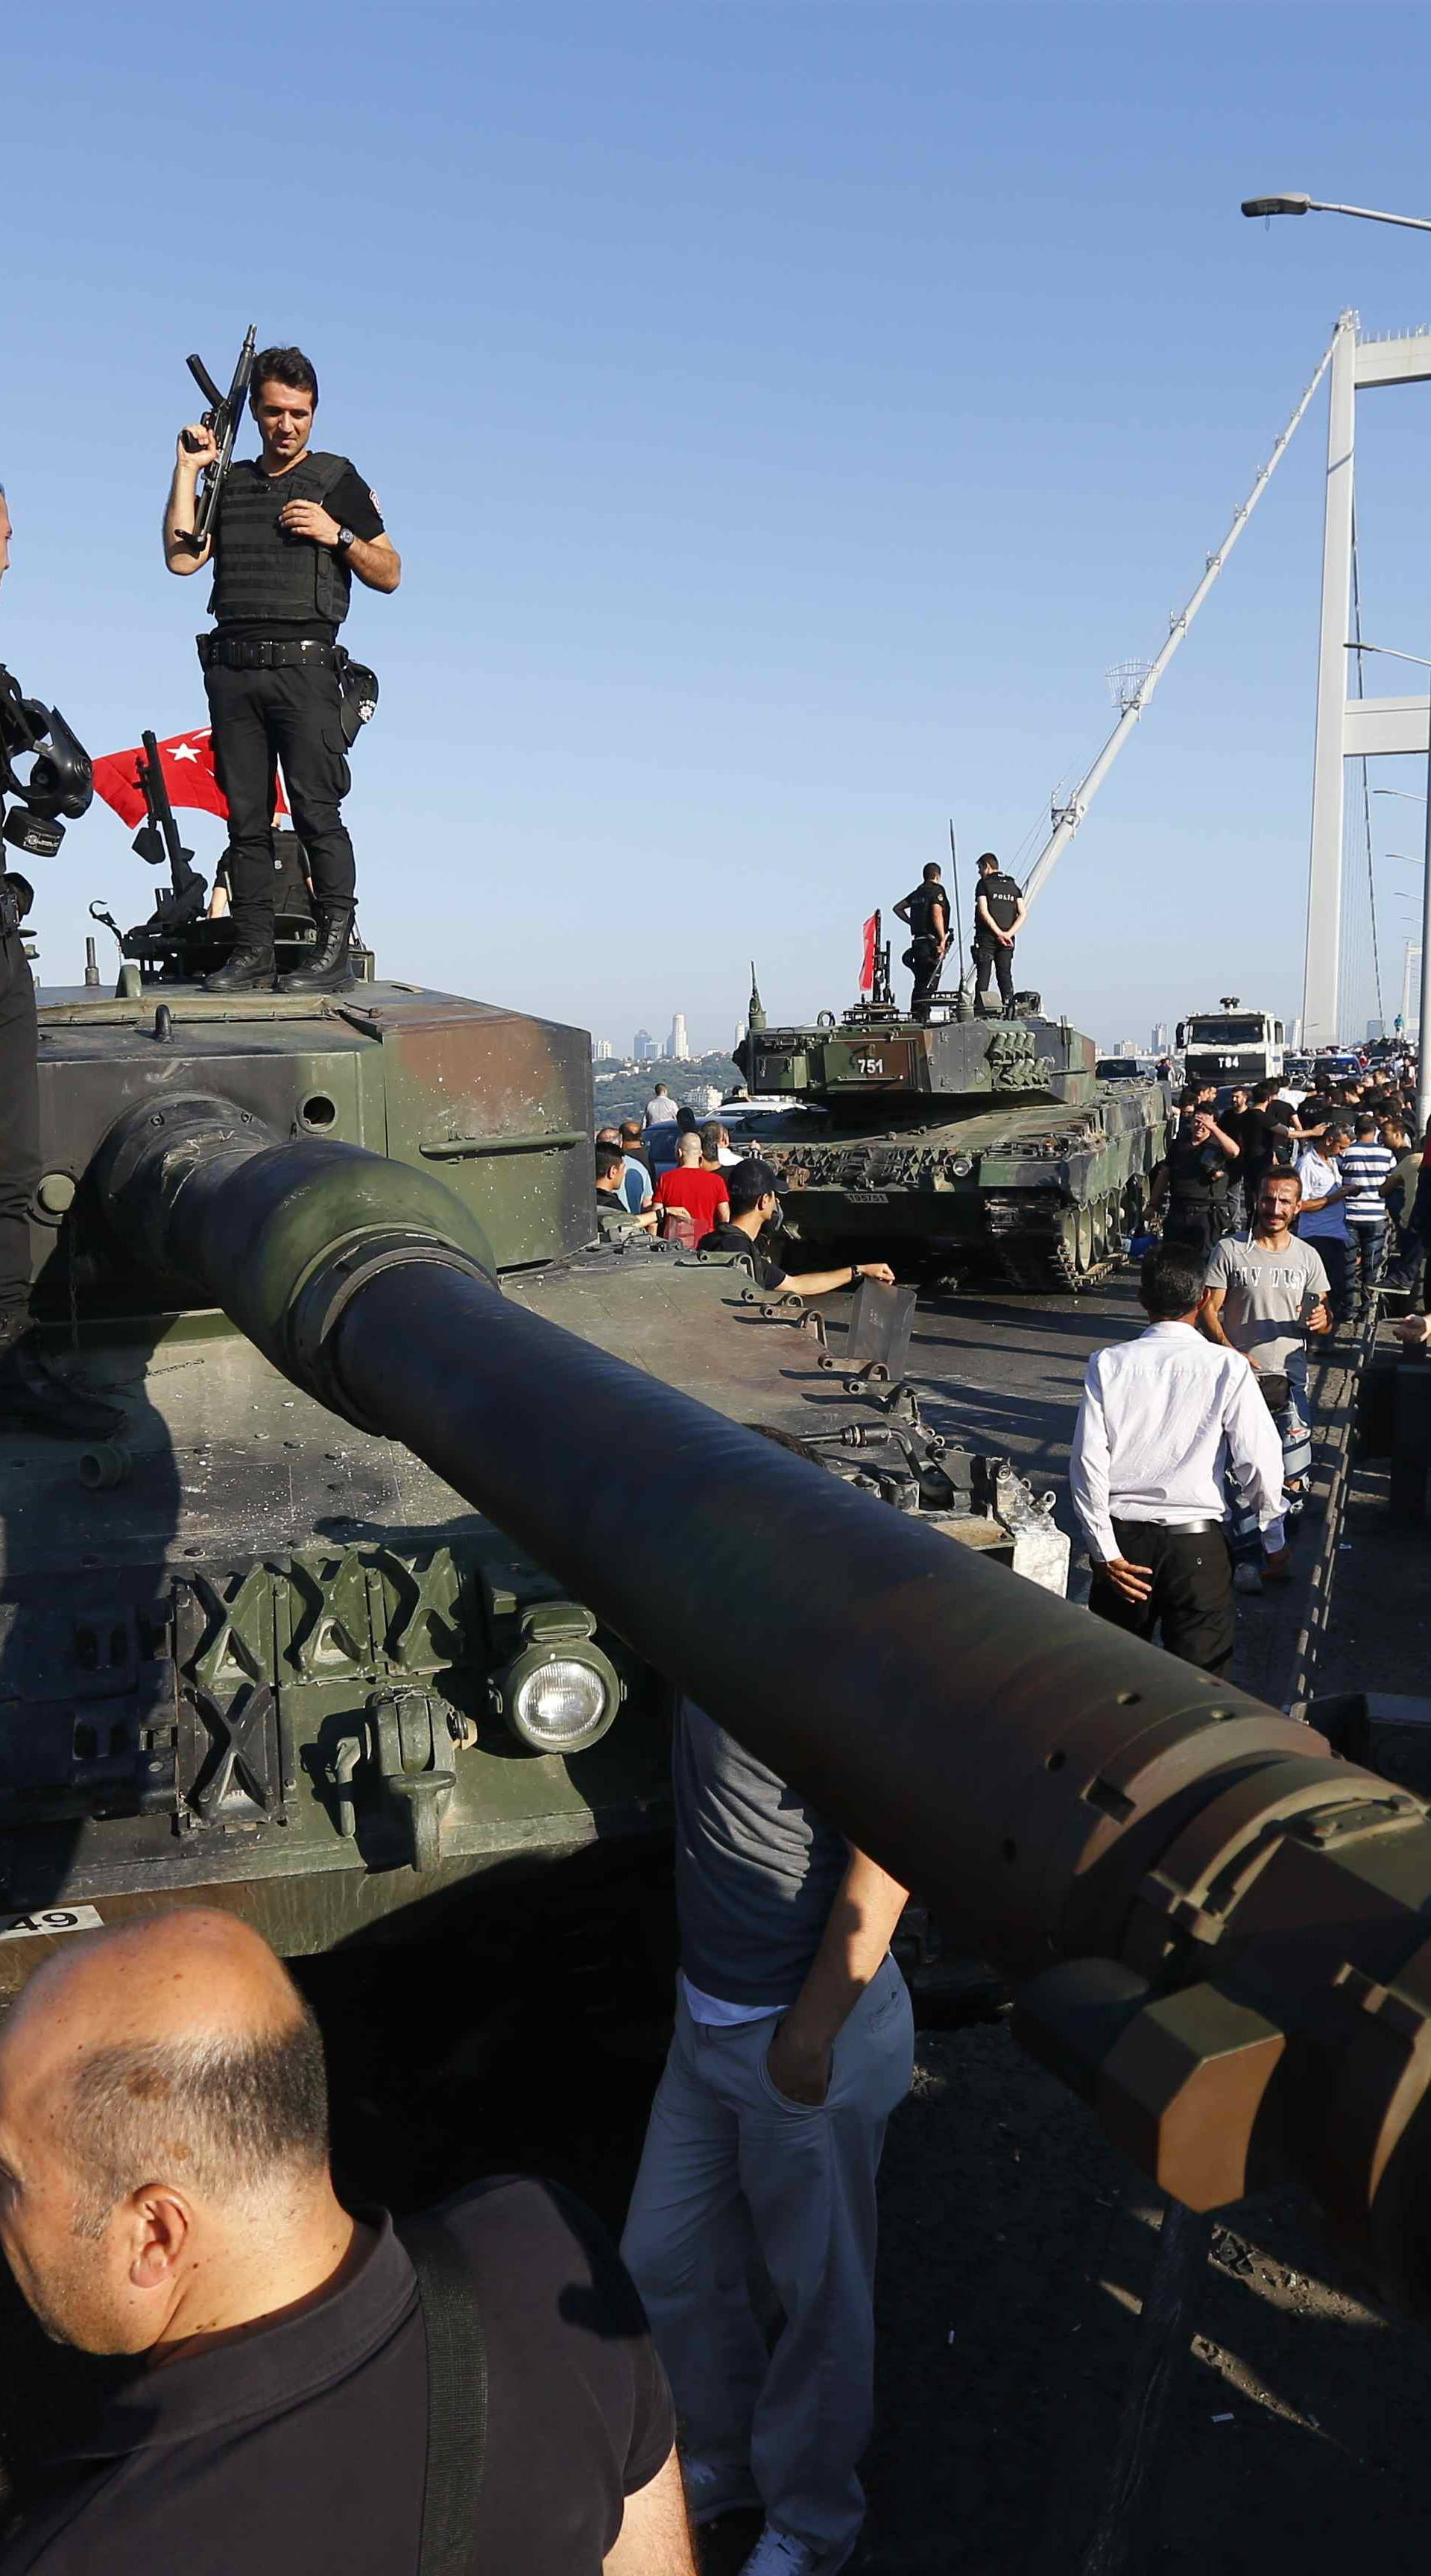 Policemen stand on a military vehicle after troops involved in the coup surrendered on the Bosphorus Bridge in Istanbul